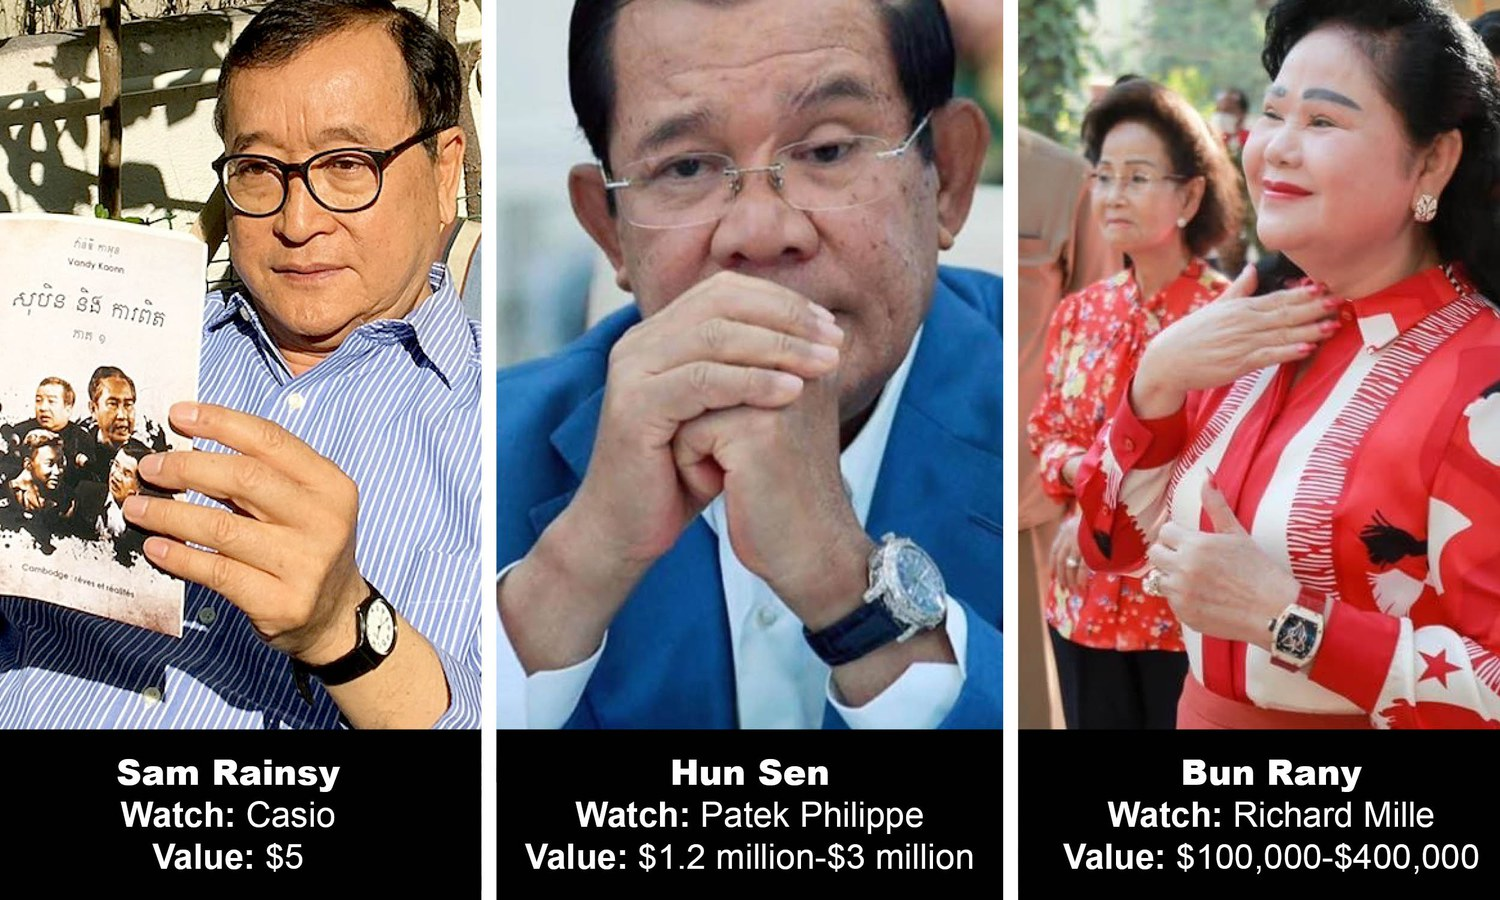 Cambodia's Hun Sen Challenged to Sell Luxury Watches to Help the Poor